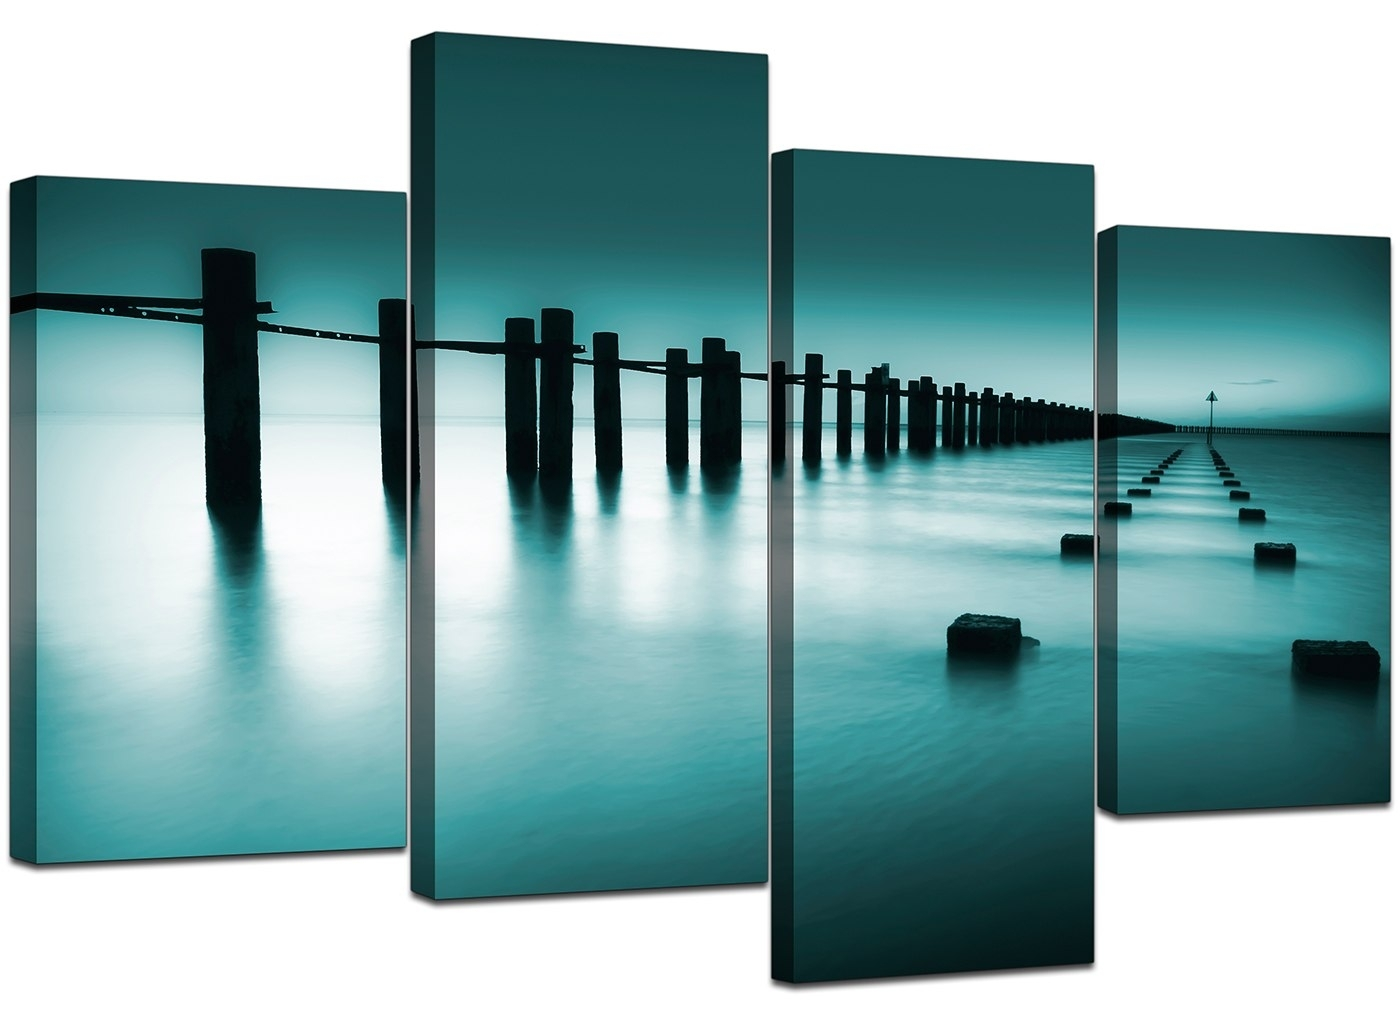 Decor: Decorate Bedroom Ideas With Large Canvas Wall Art In intended for Oversized Teal Canvas Wall Art (Image 8 of 20)